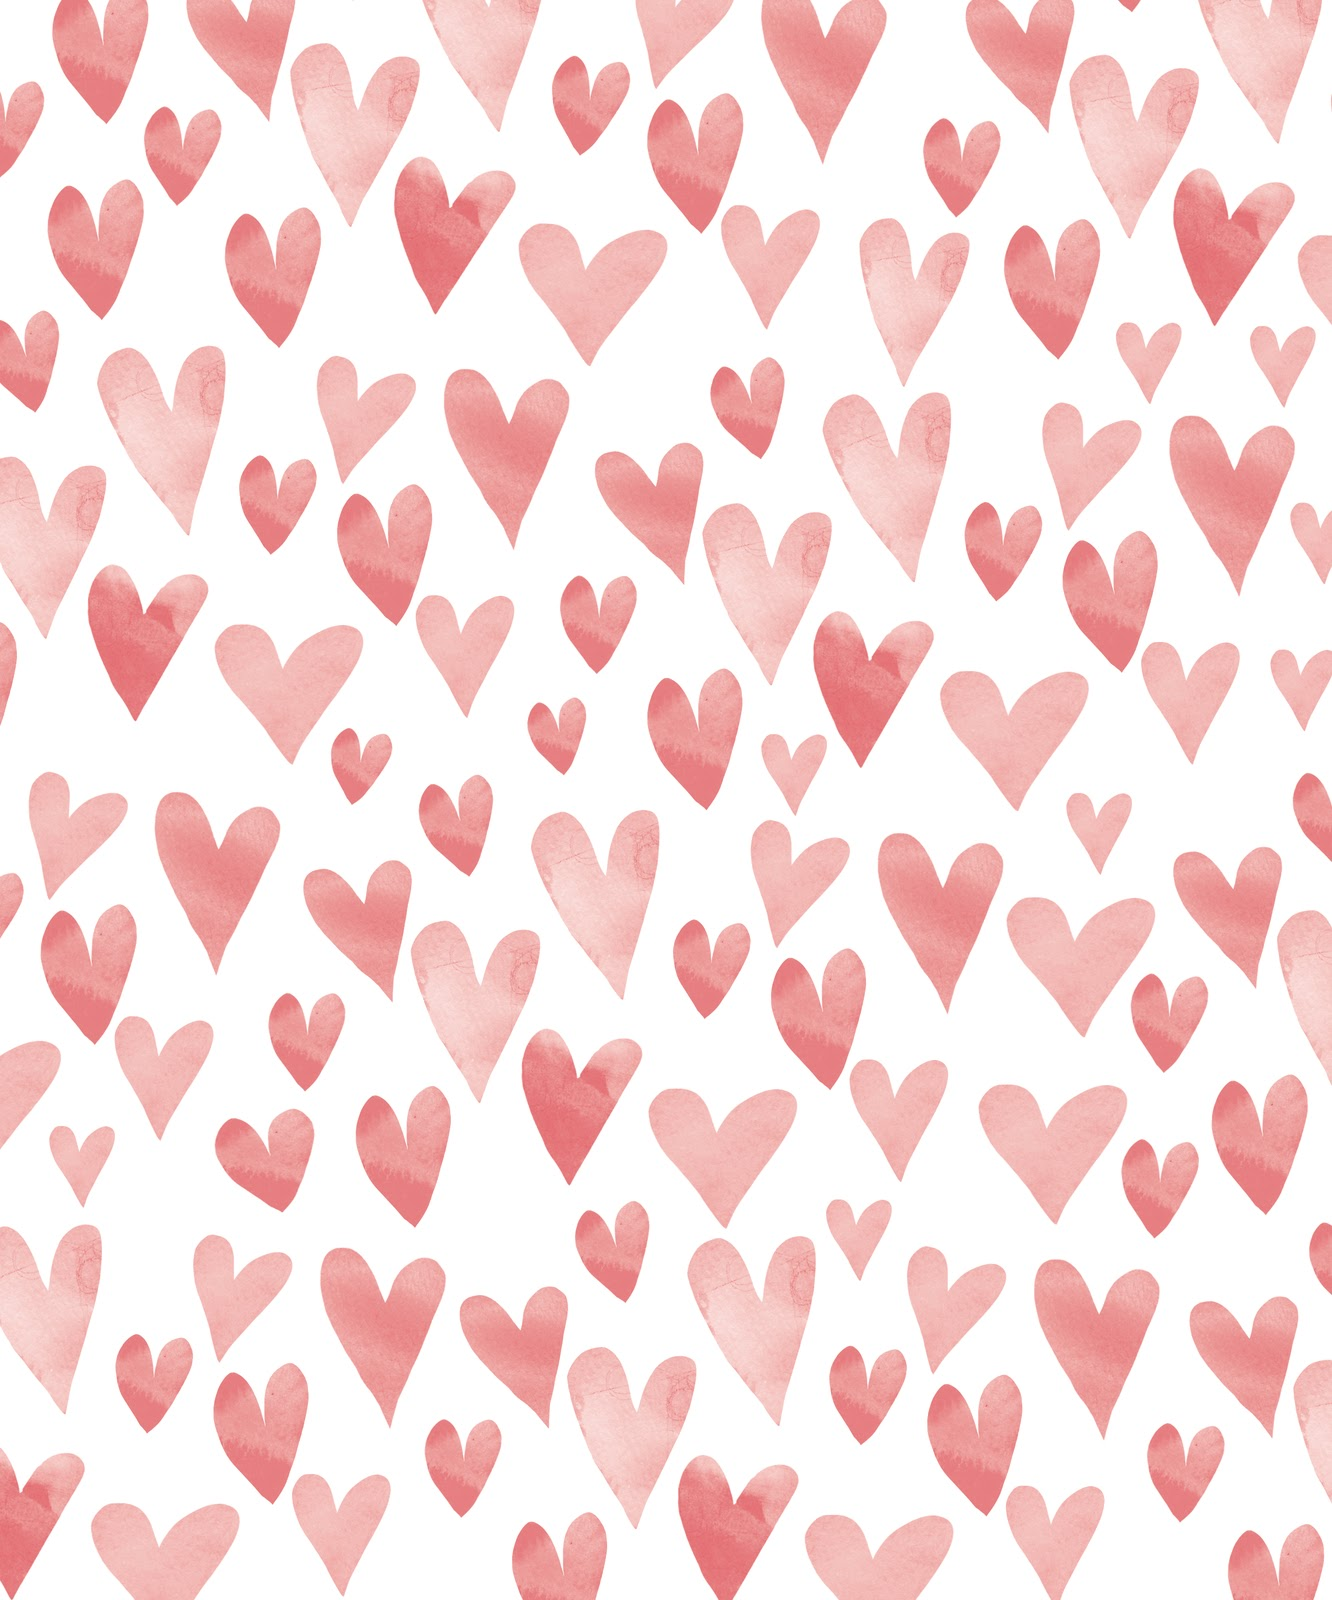 Current image in heart pattern printable